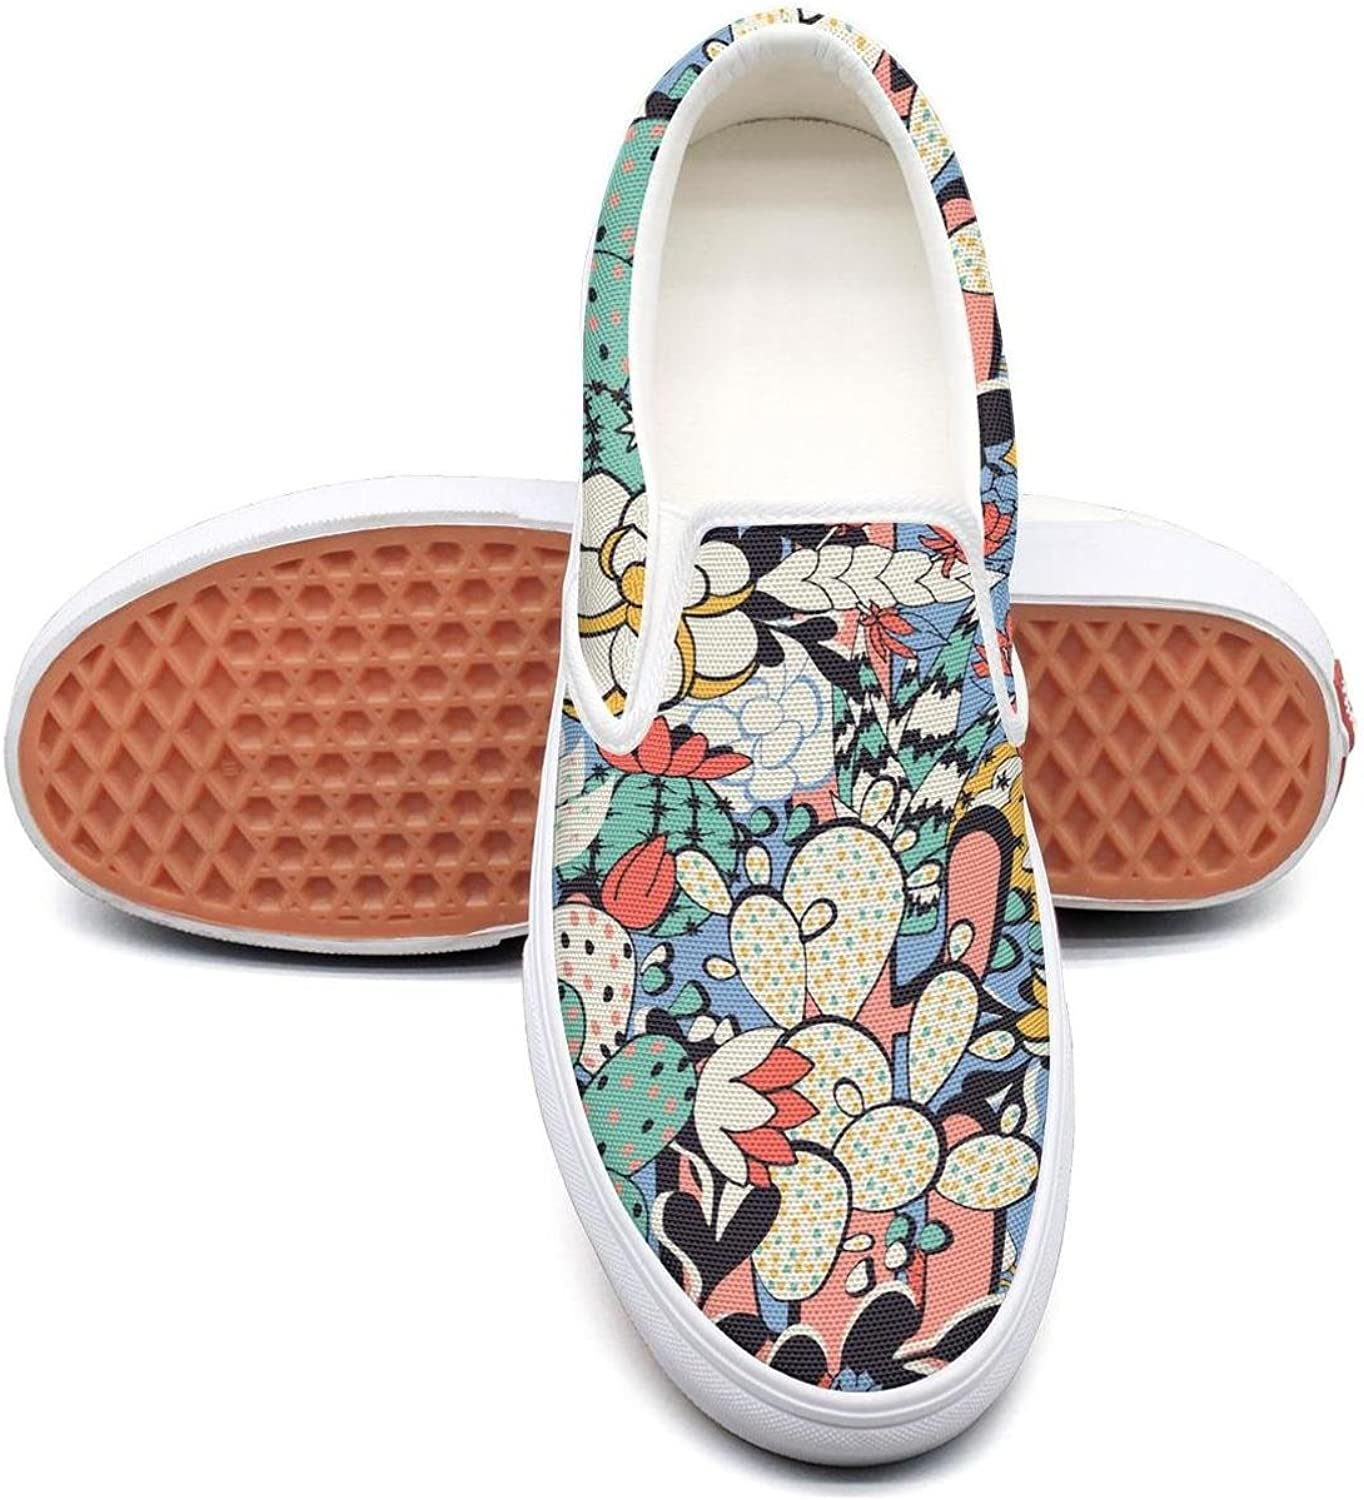 Cactus Decorations Picture Slip on Rubber Sole Sneakers Canvas shoes for Women Casual